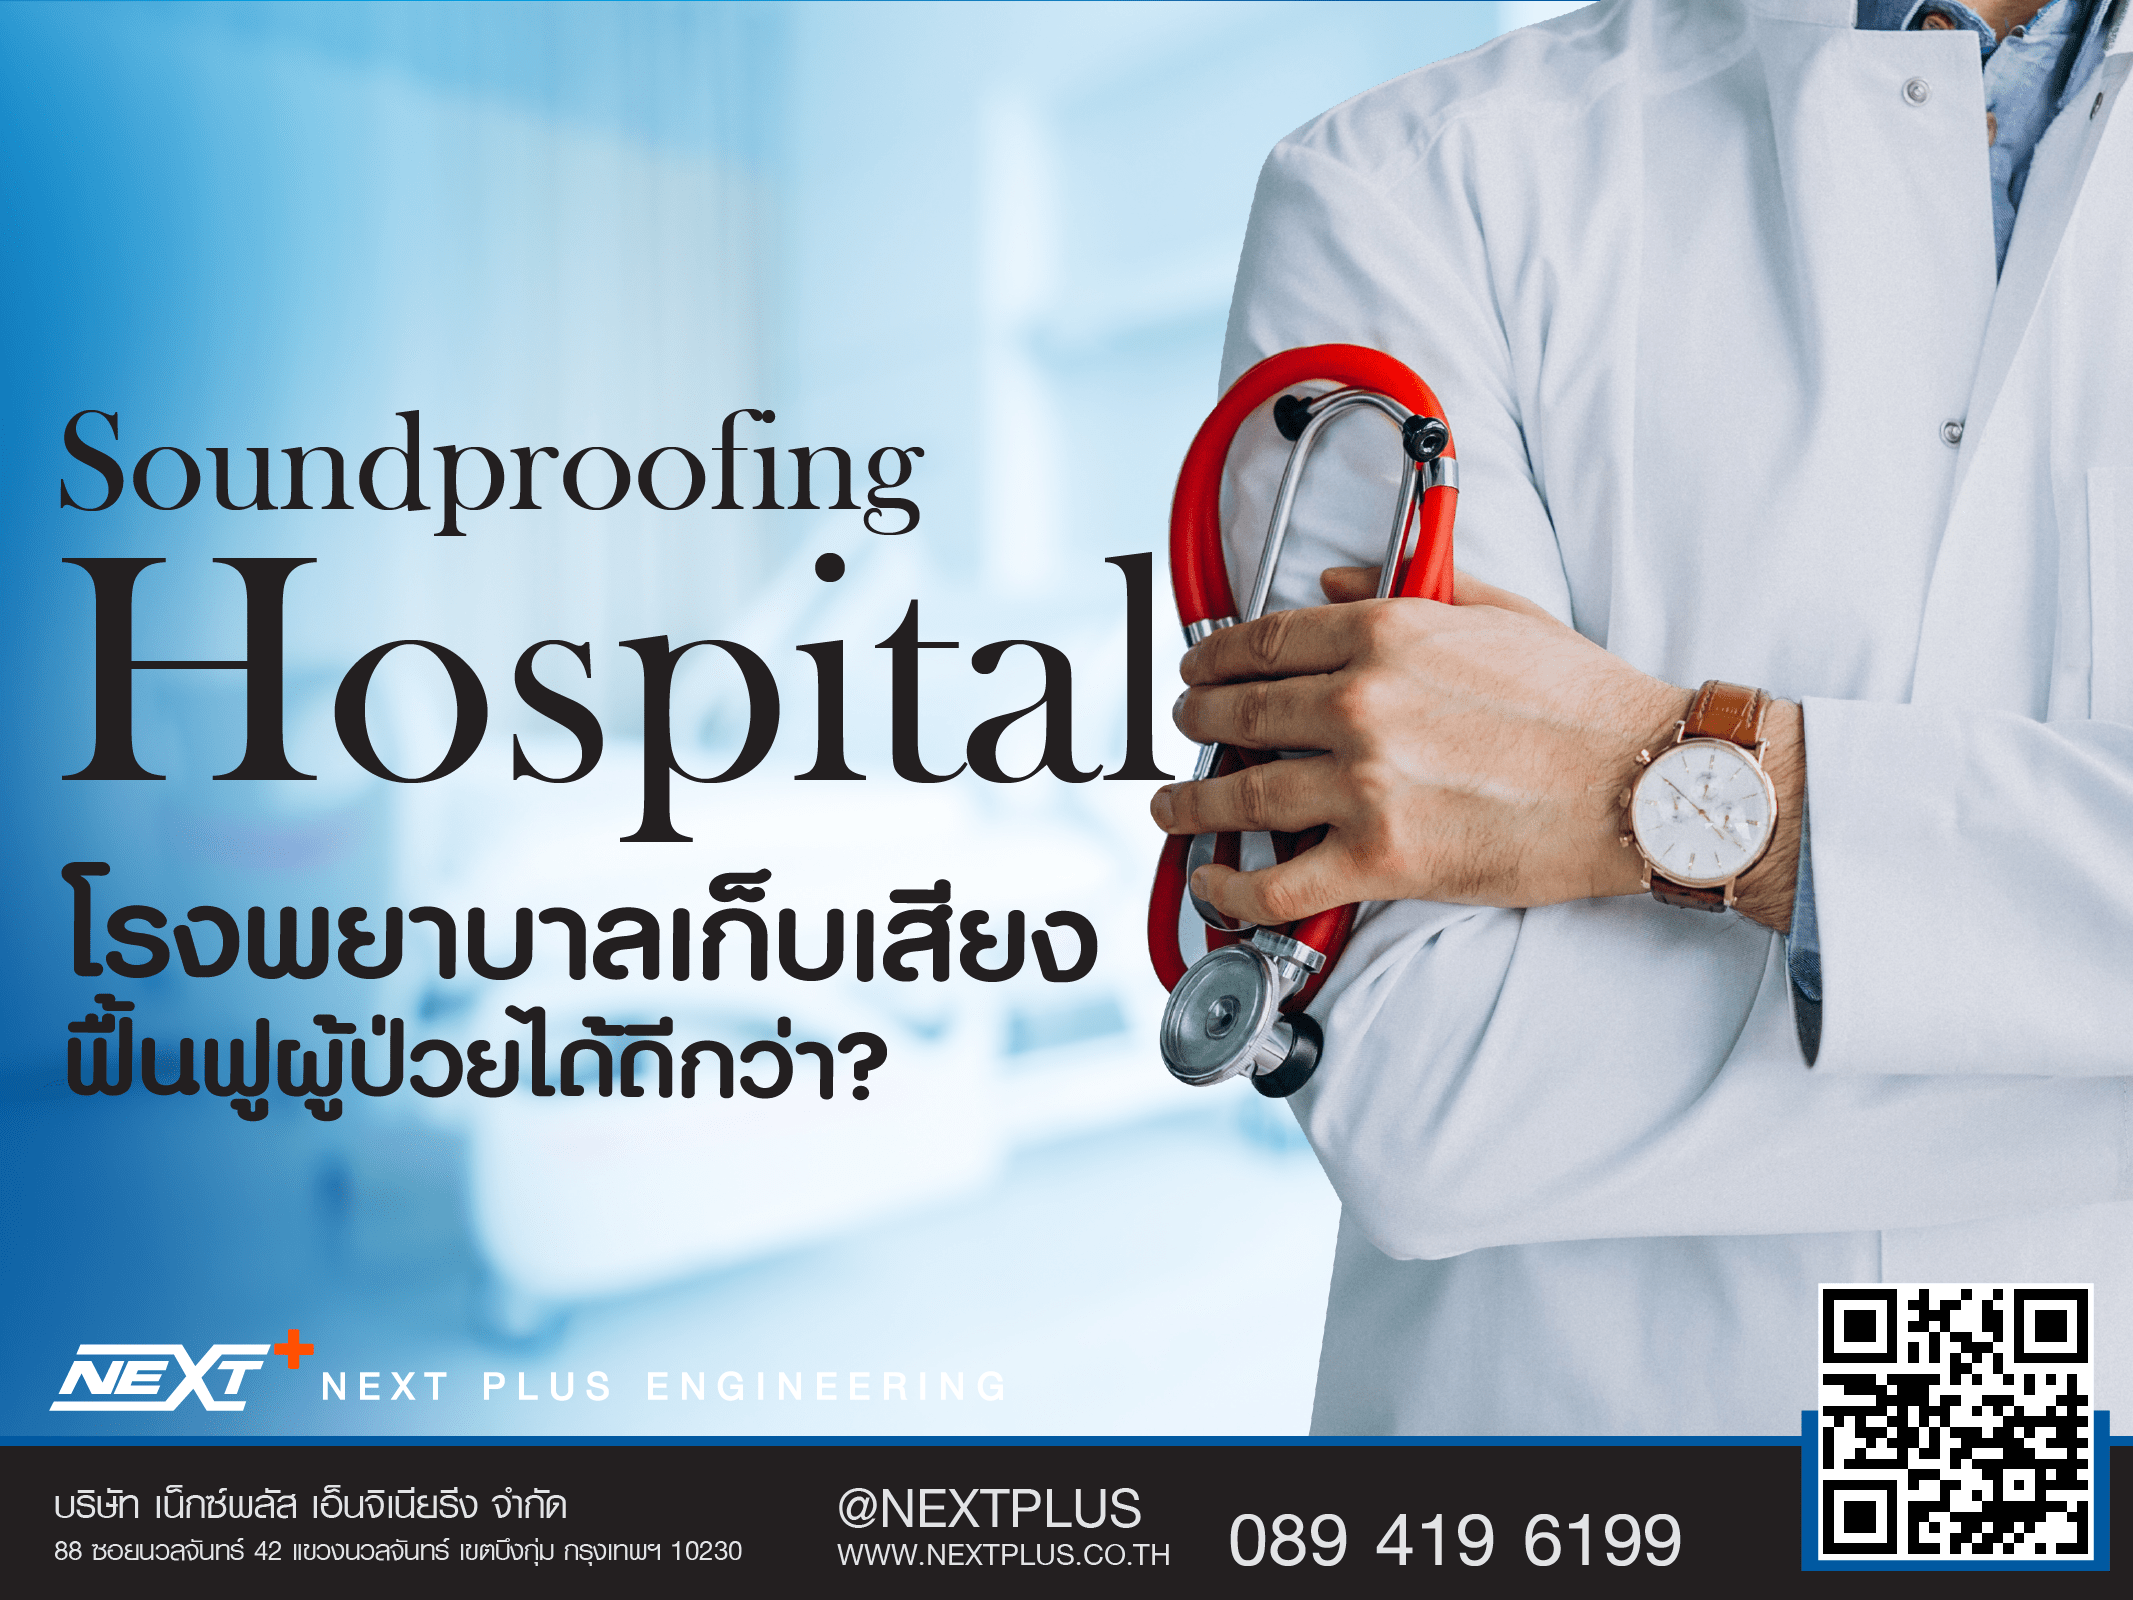 Soundproofing hospital-Next Plus Engineering-01